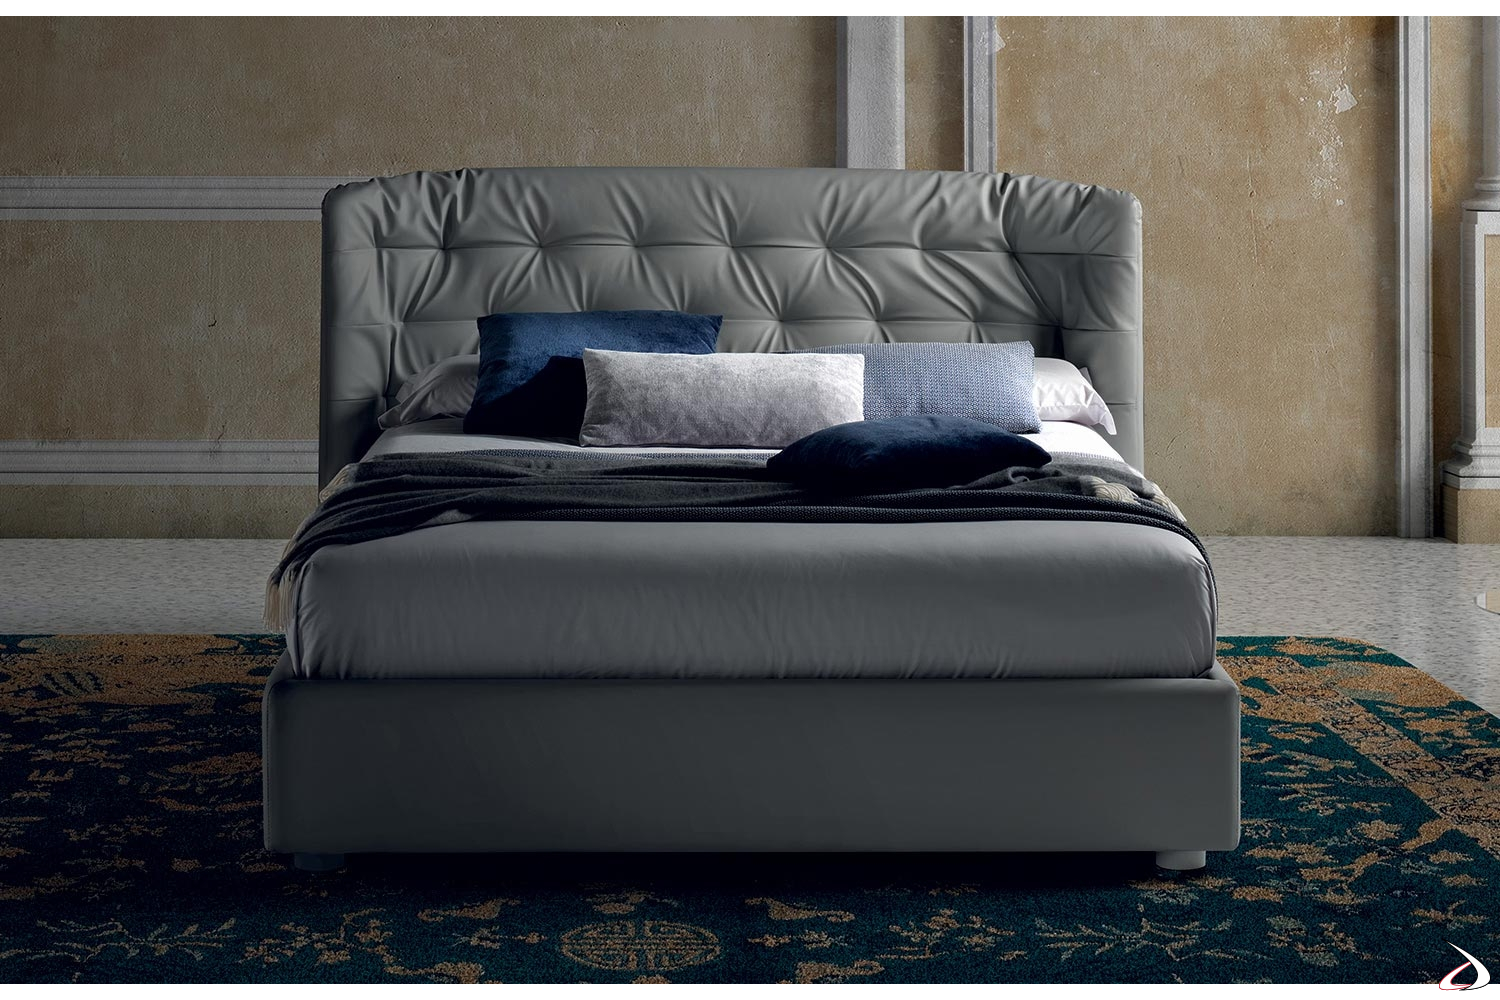 Letto Con Testata Trapuntata.Double Bed With Quilted Headboard And Elvira Container Toparredi